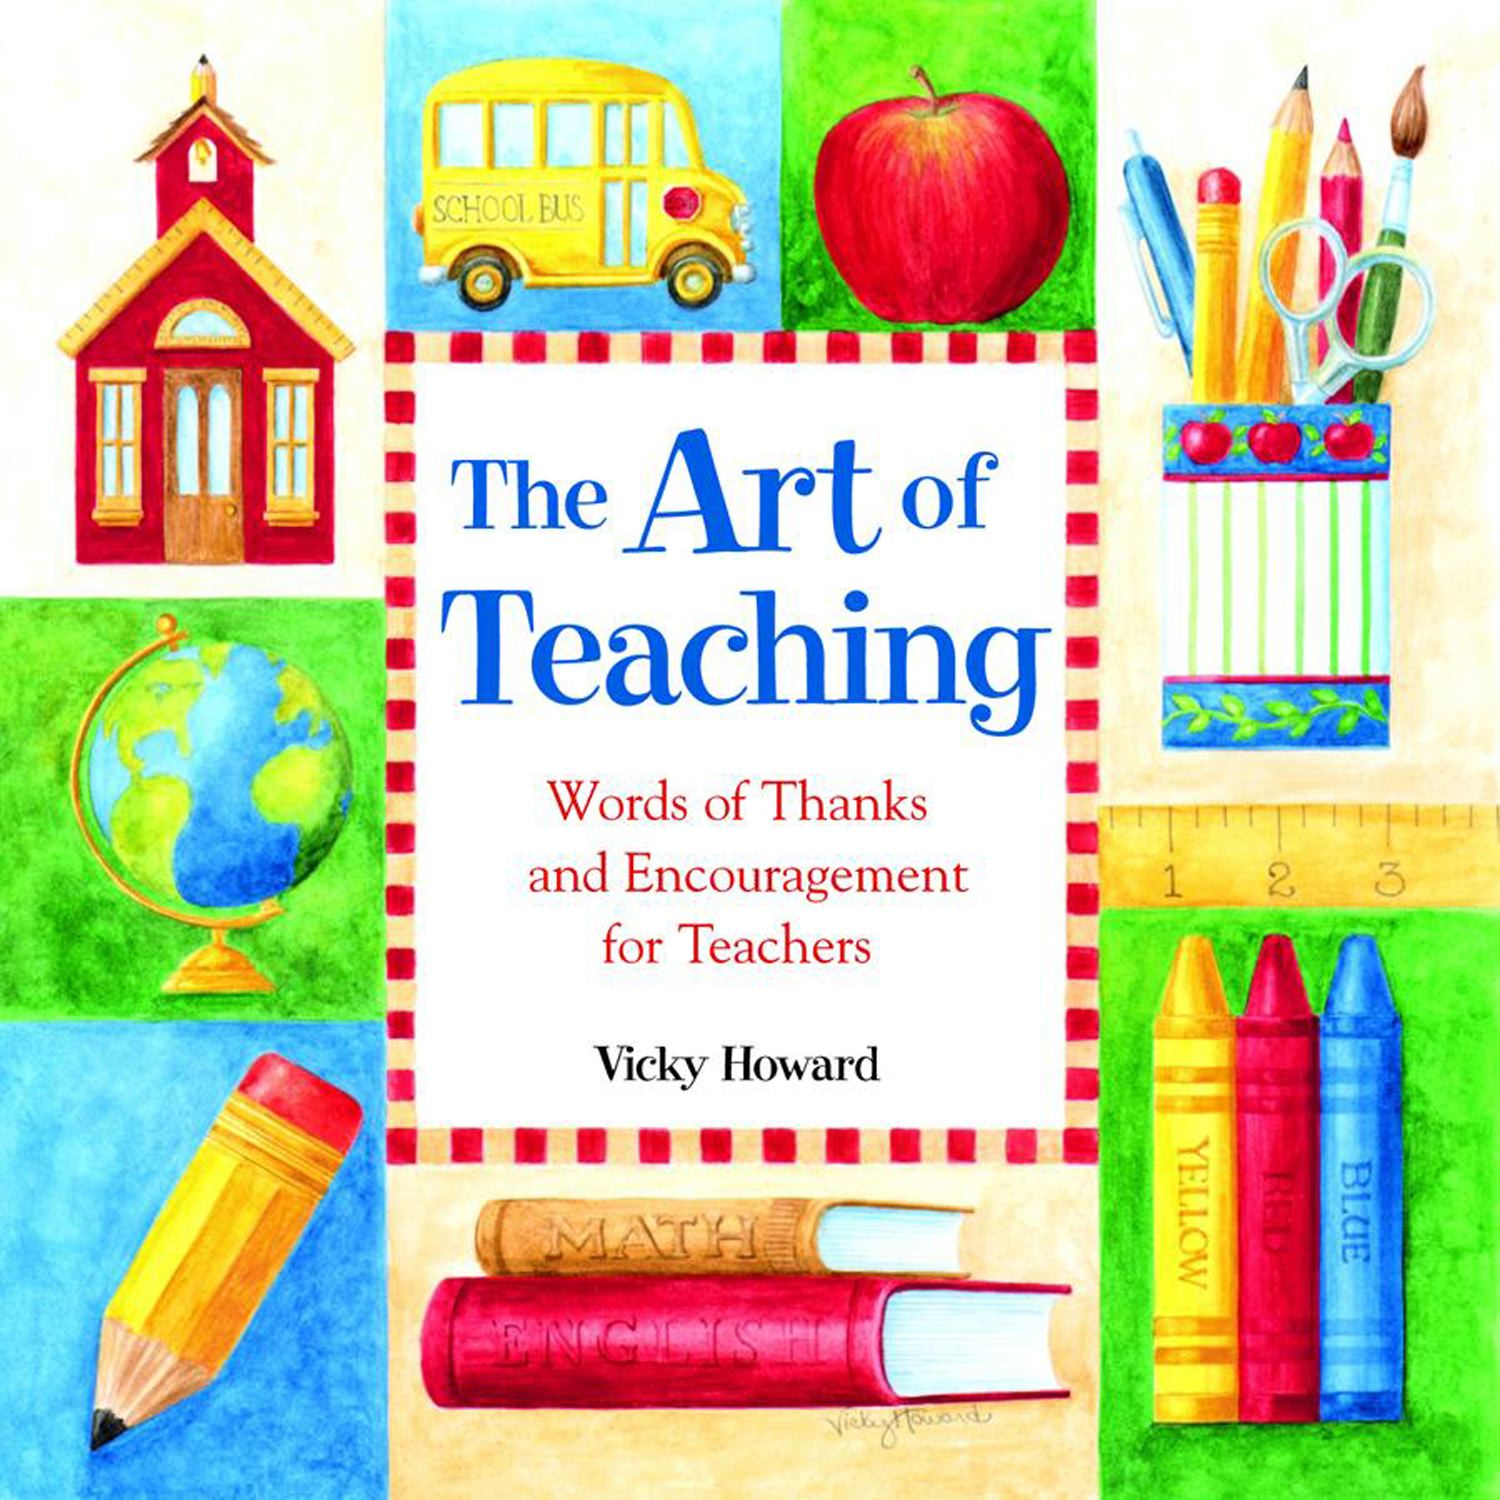 The Art of Teaching : Words of Thanks and Encouragement for Teachers